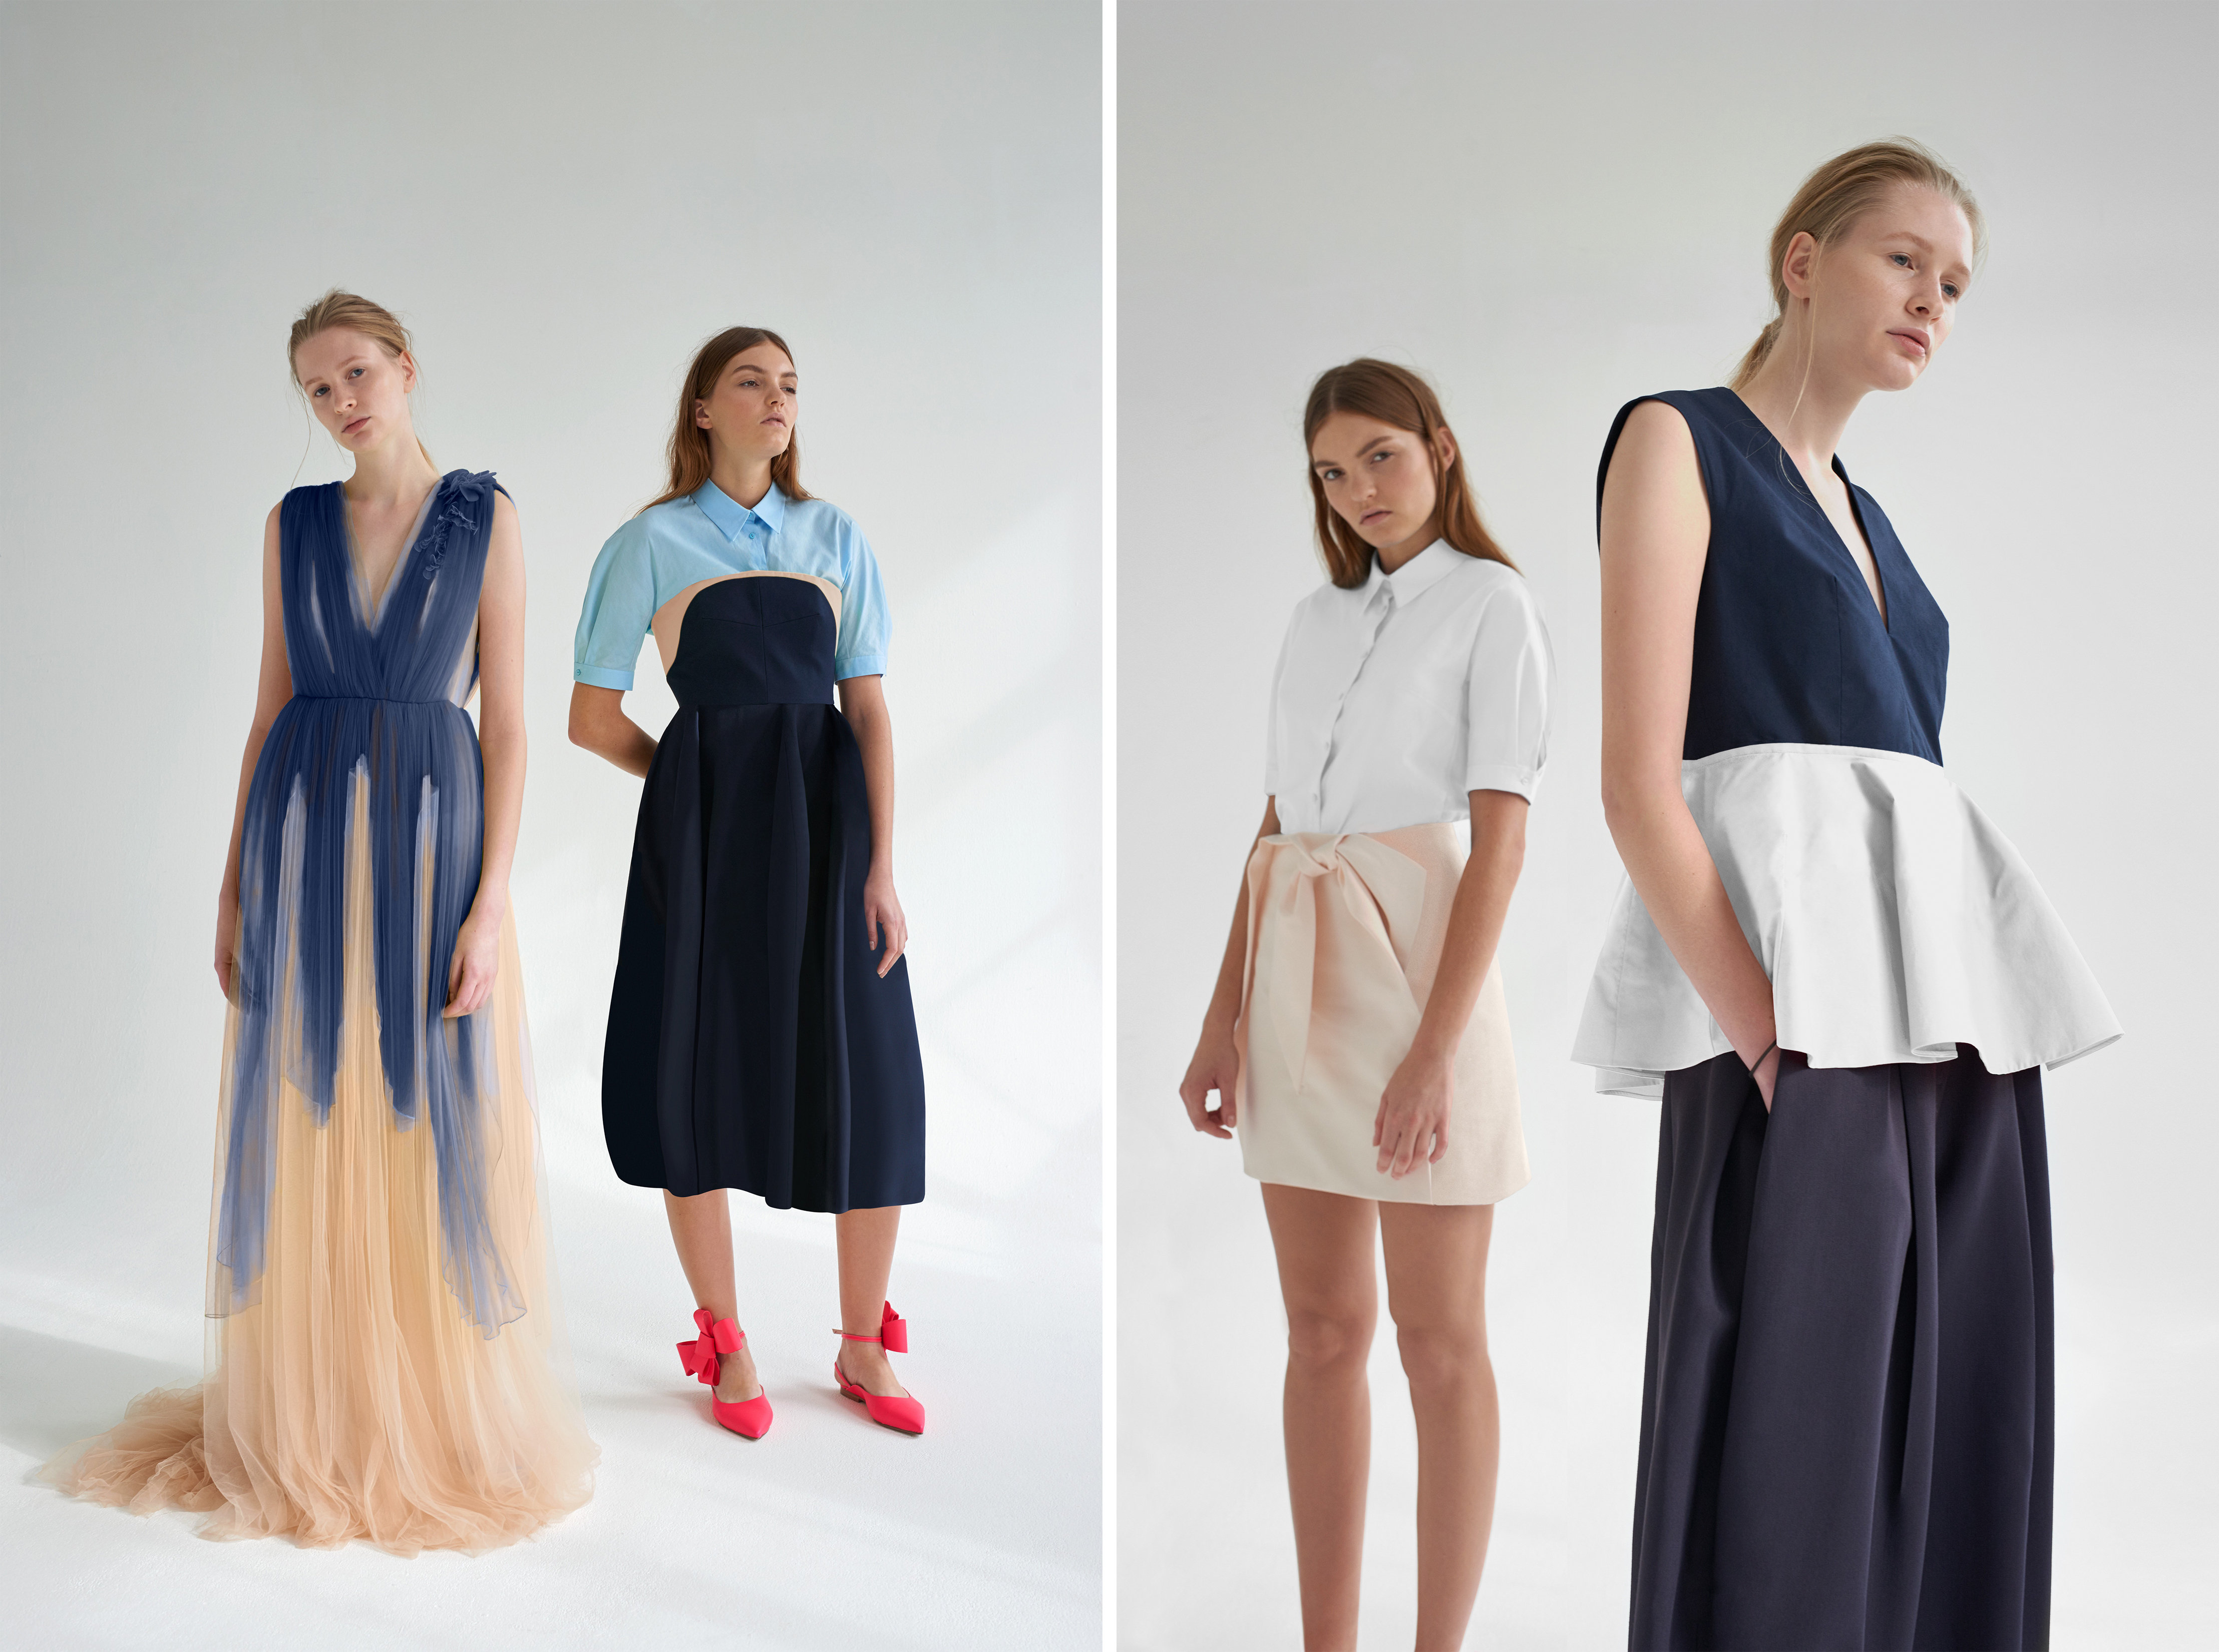 Looks from the Delpozo x Stylebop.com collaboration